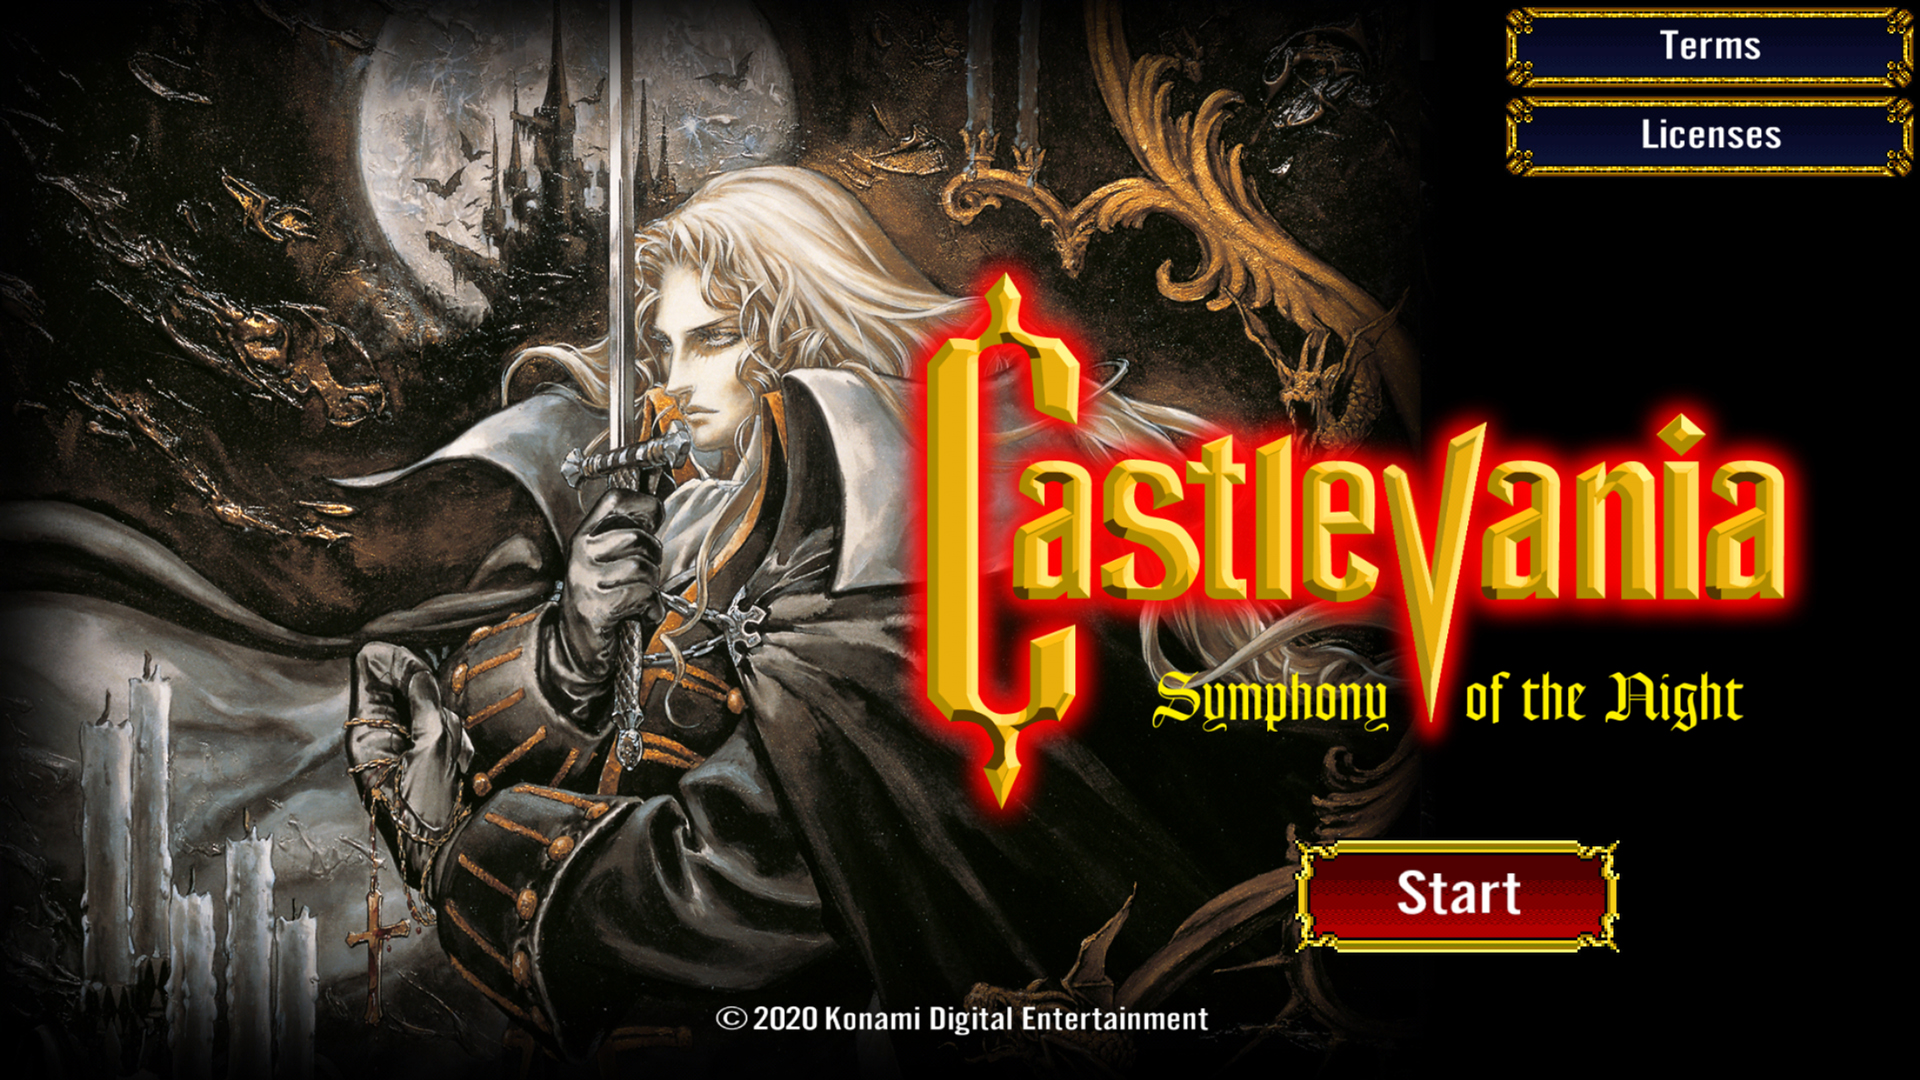 Castlevania Symphony Of The Night Gets A Surprise Release On